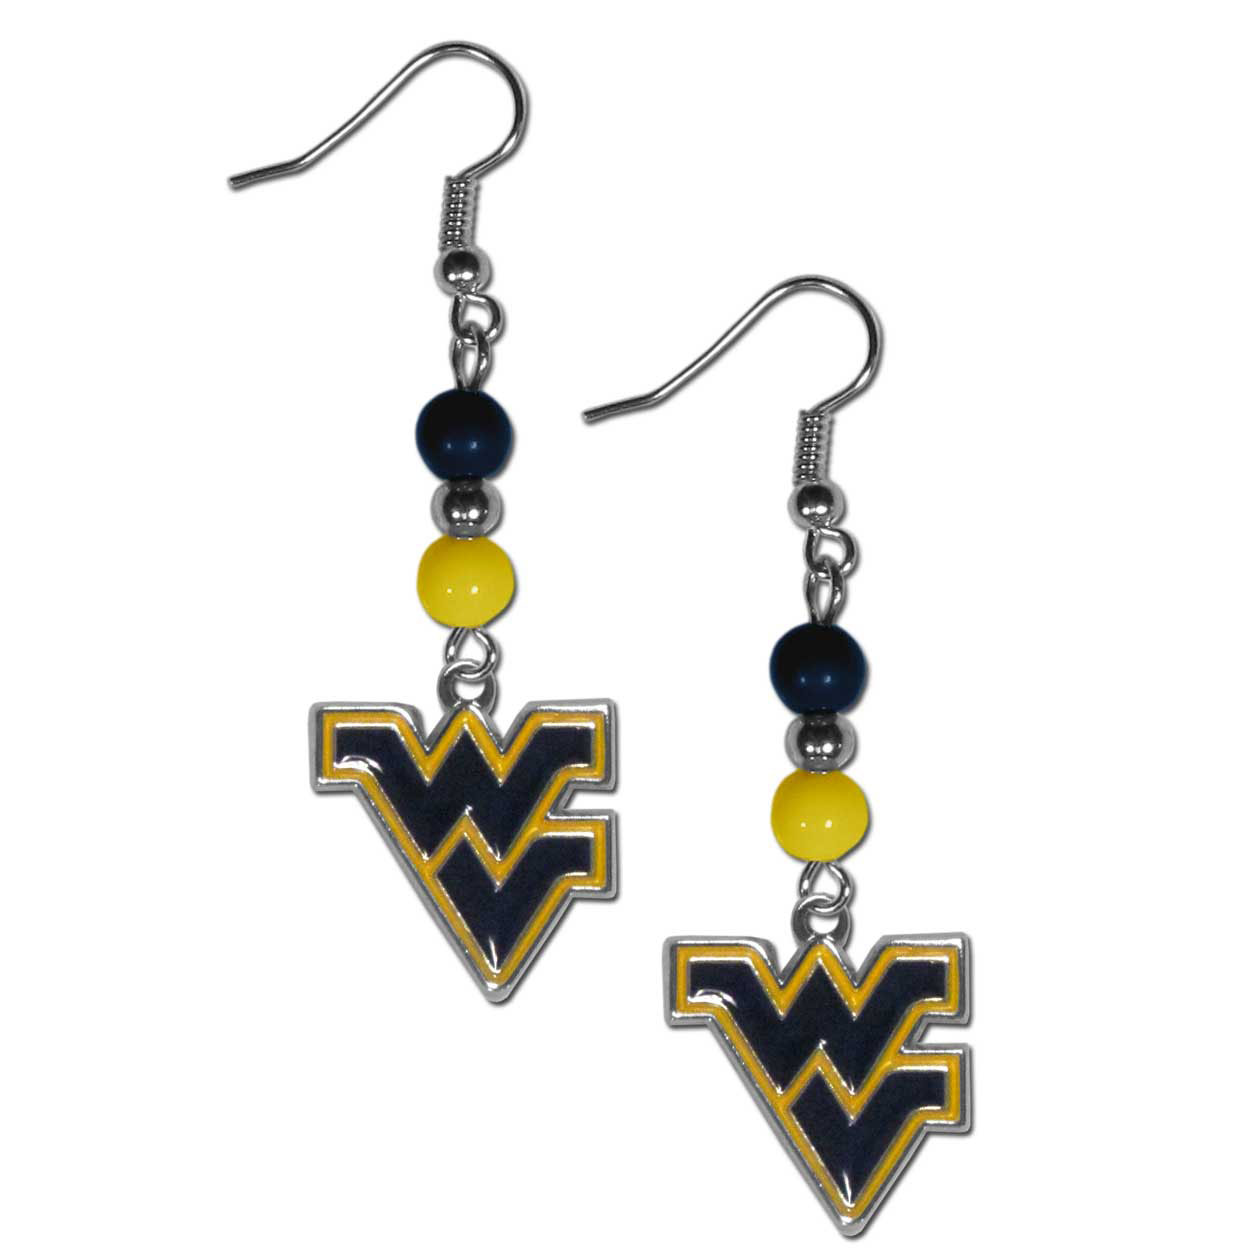 W. Virginia Mountaineers Fan Bead Dangle Earrings - Love your team, show it off with our W. Virginia Mountaineers bead dangle earrings! These super cute earrings hang approximately 2 inches and features 2 team colored beads and a high polish team charm. A must have for game day!